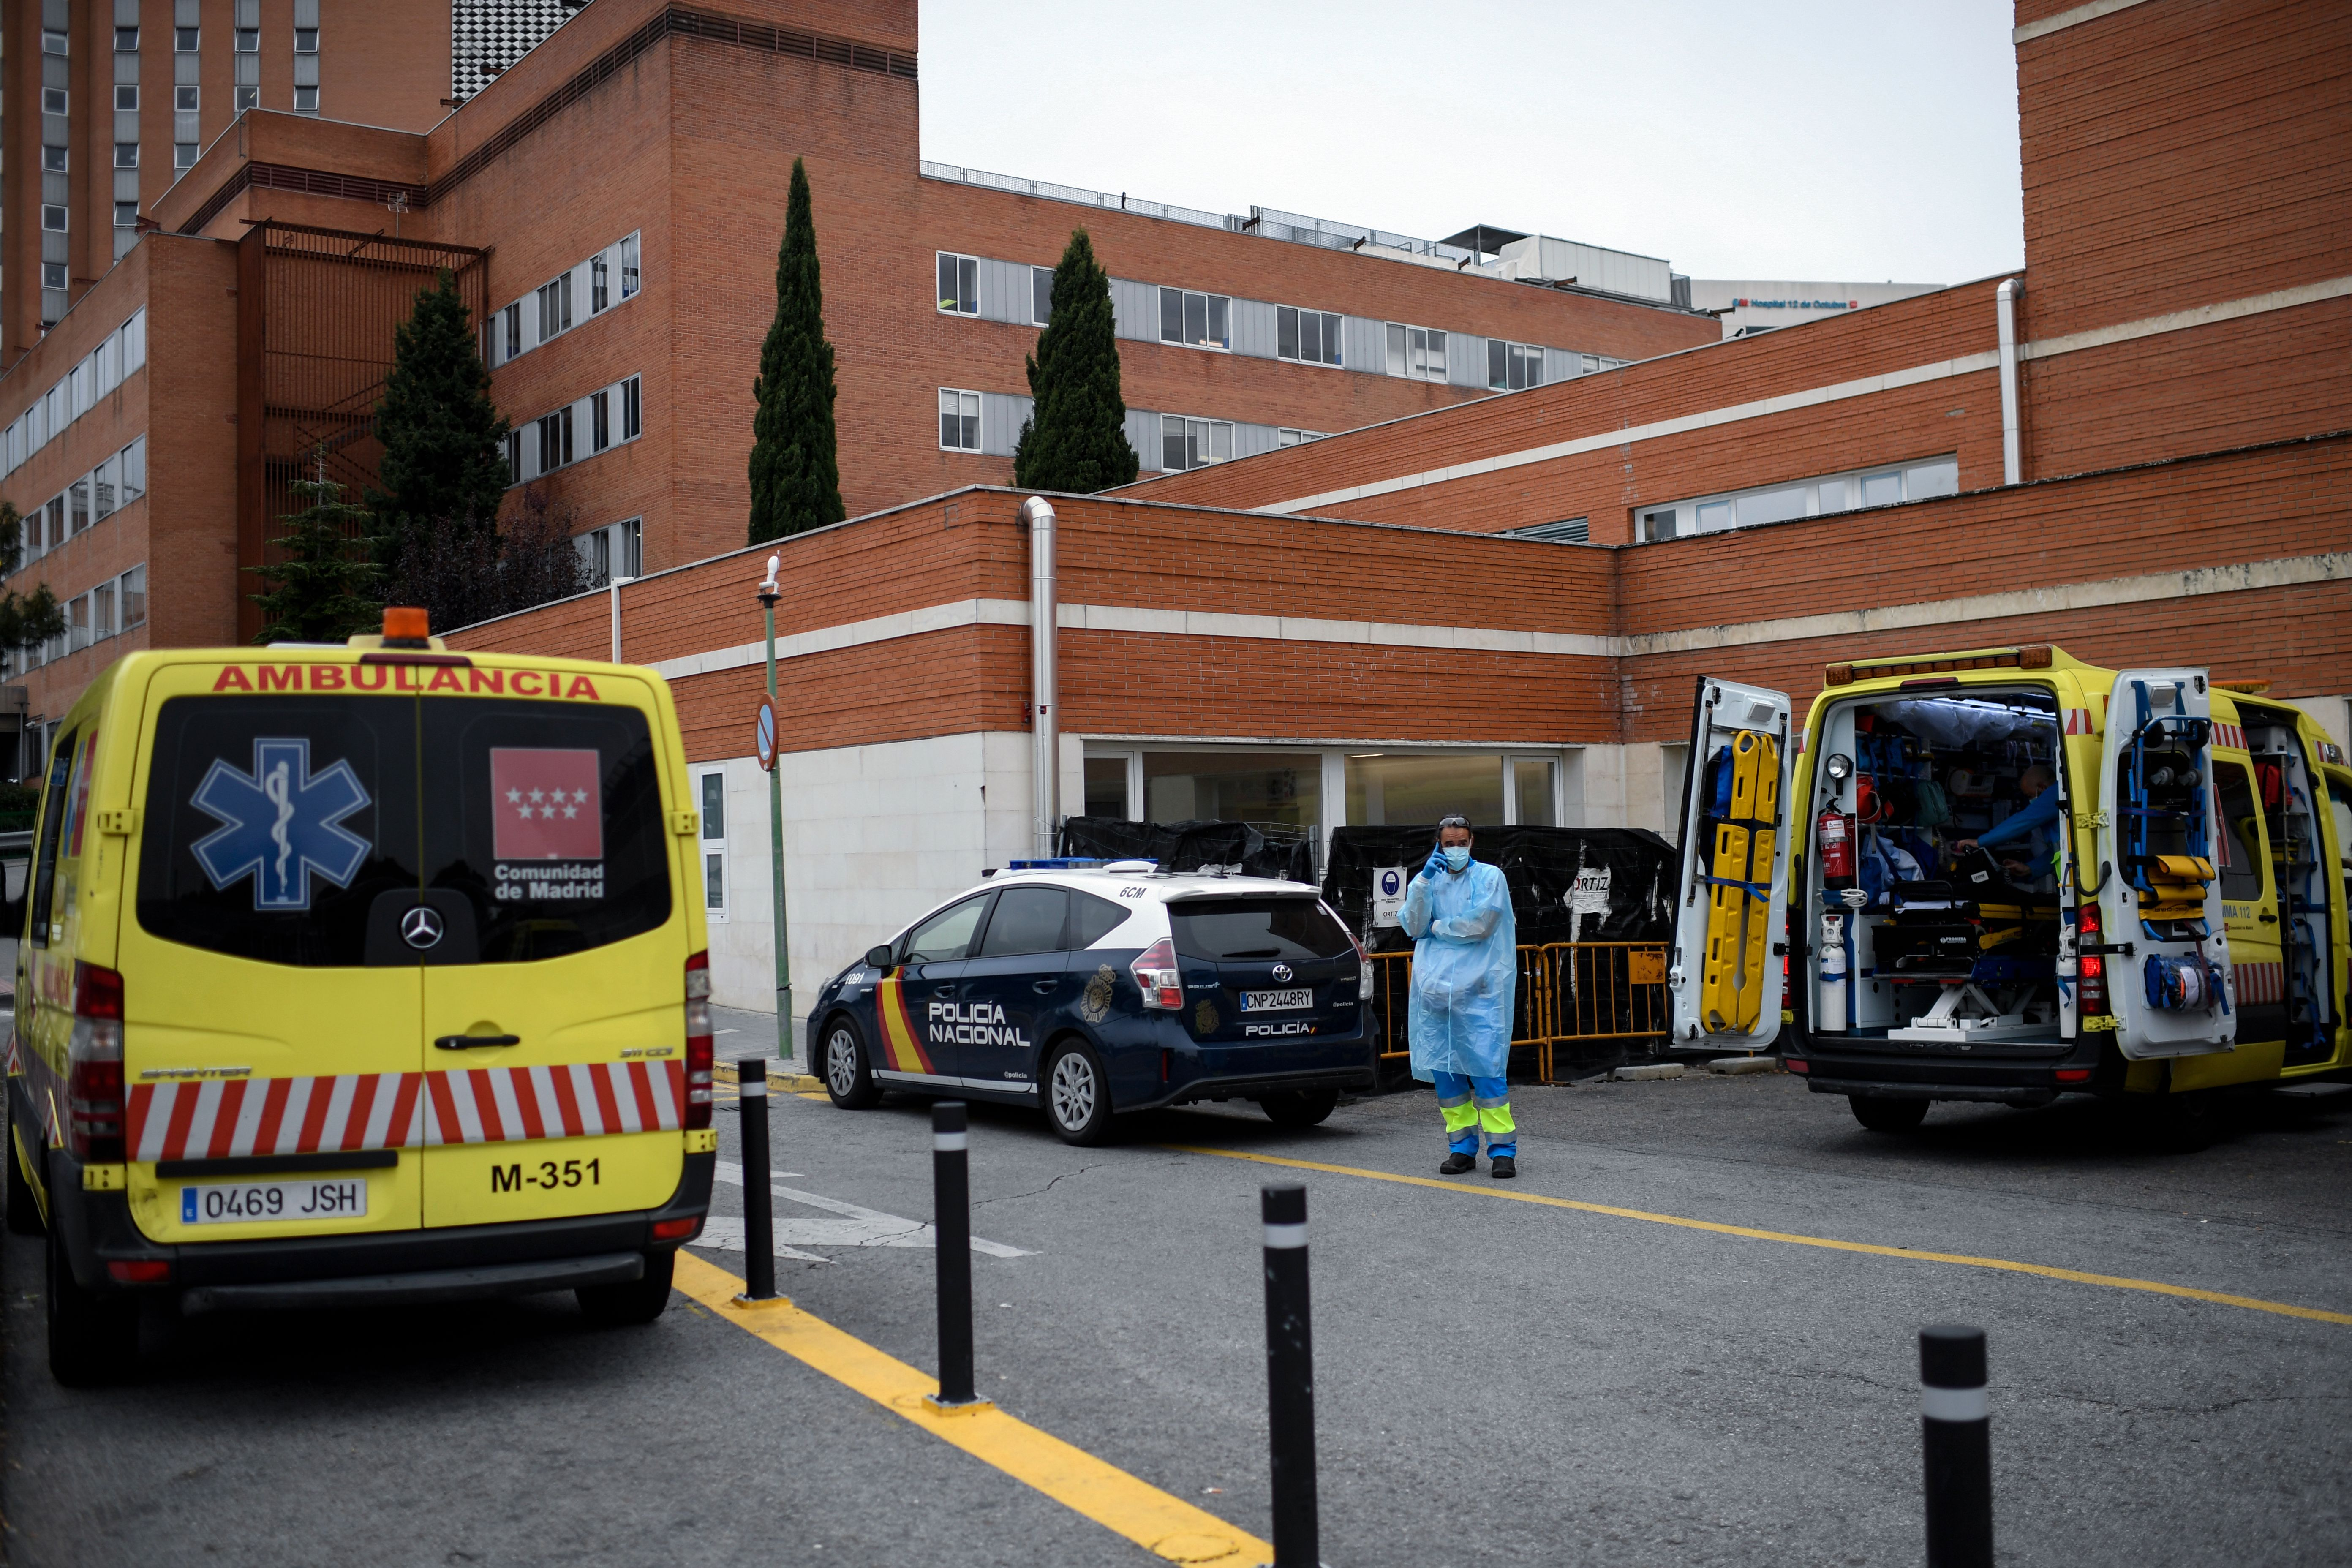 A healthcare worker wearing protective gear uses a mobile phone at the 12 de Octubre hospital in Madrid, amid the coronavirus (COVID-19) pandemic, on October 28, 2020.